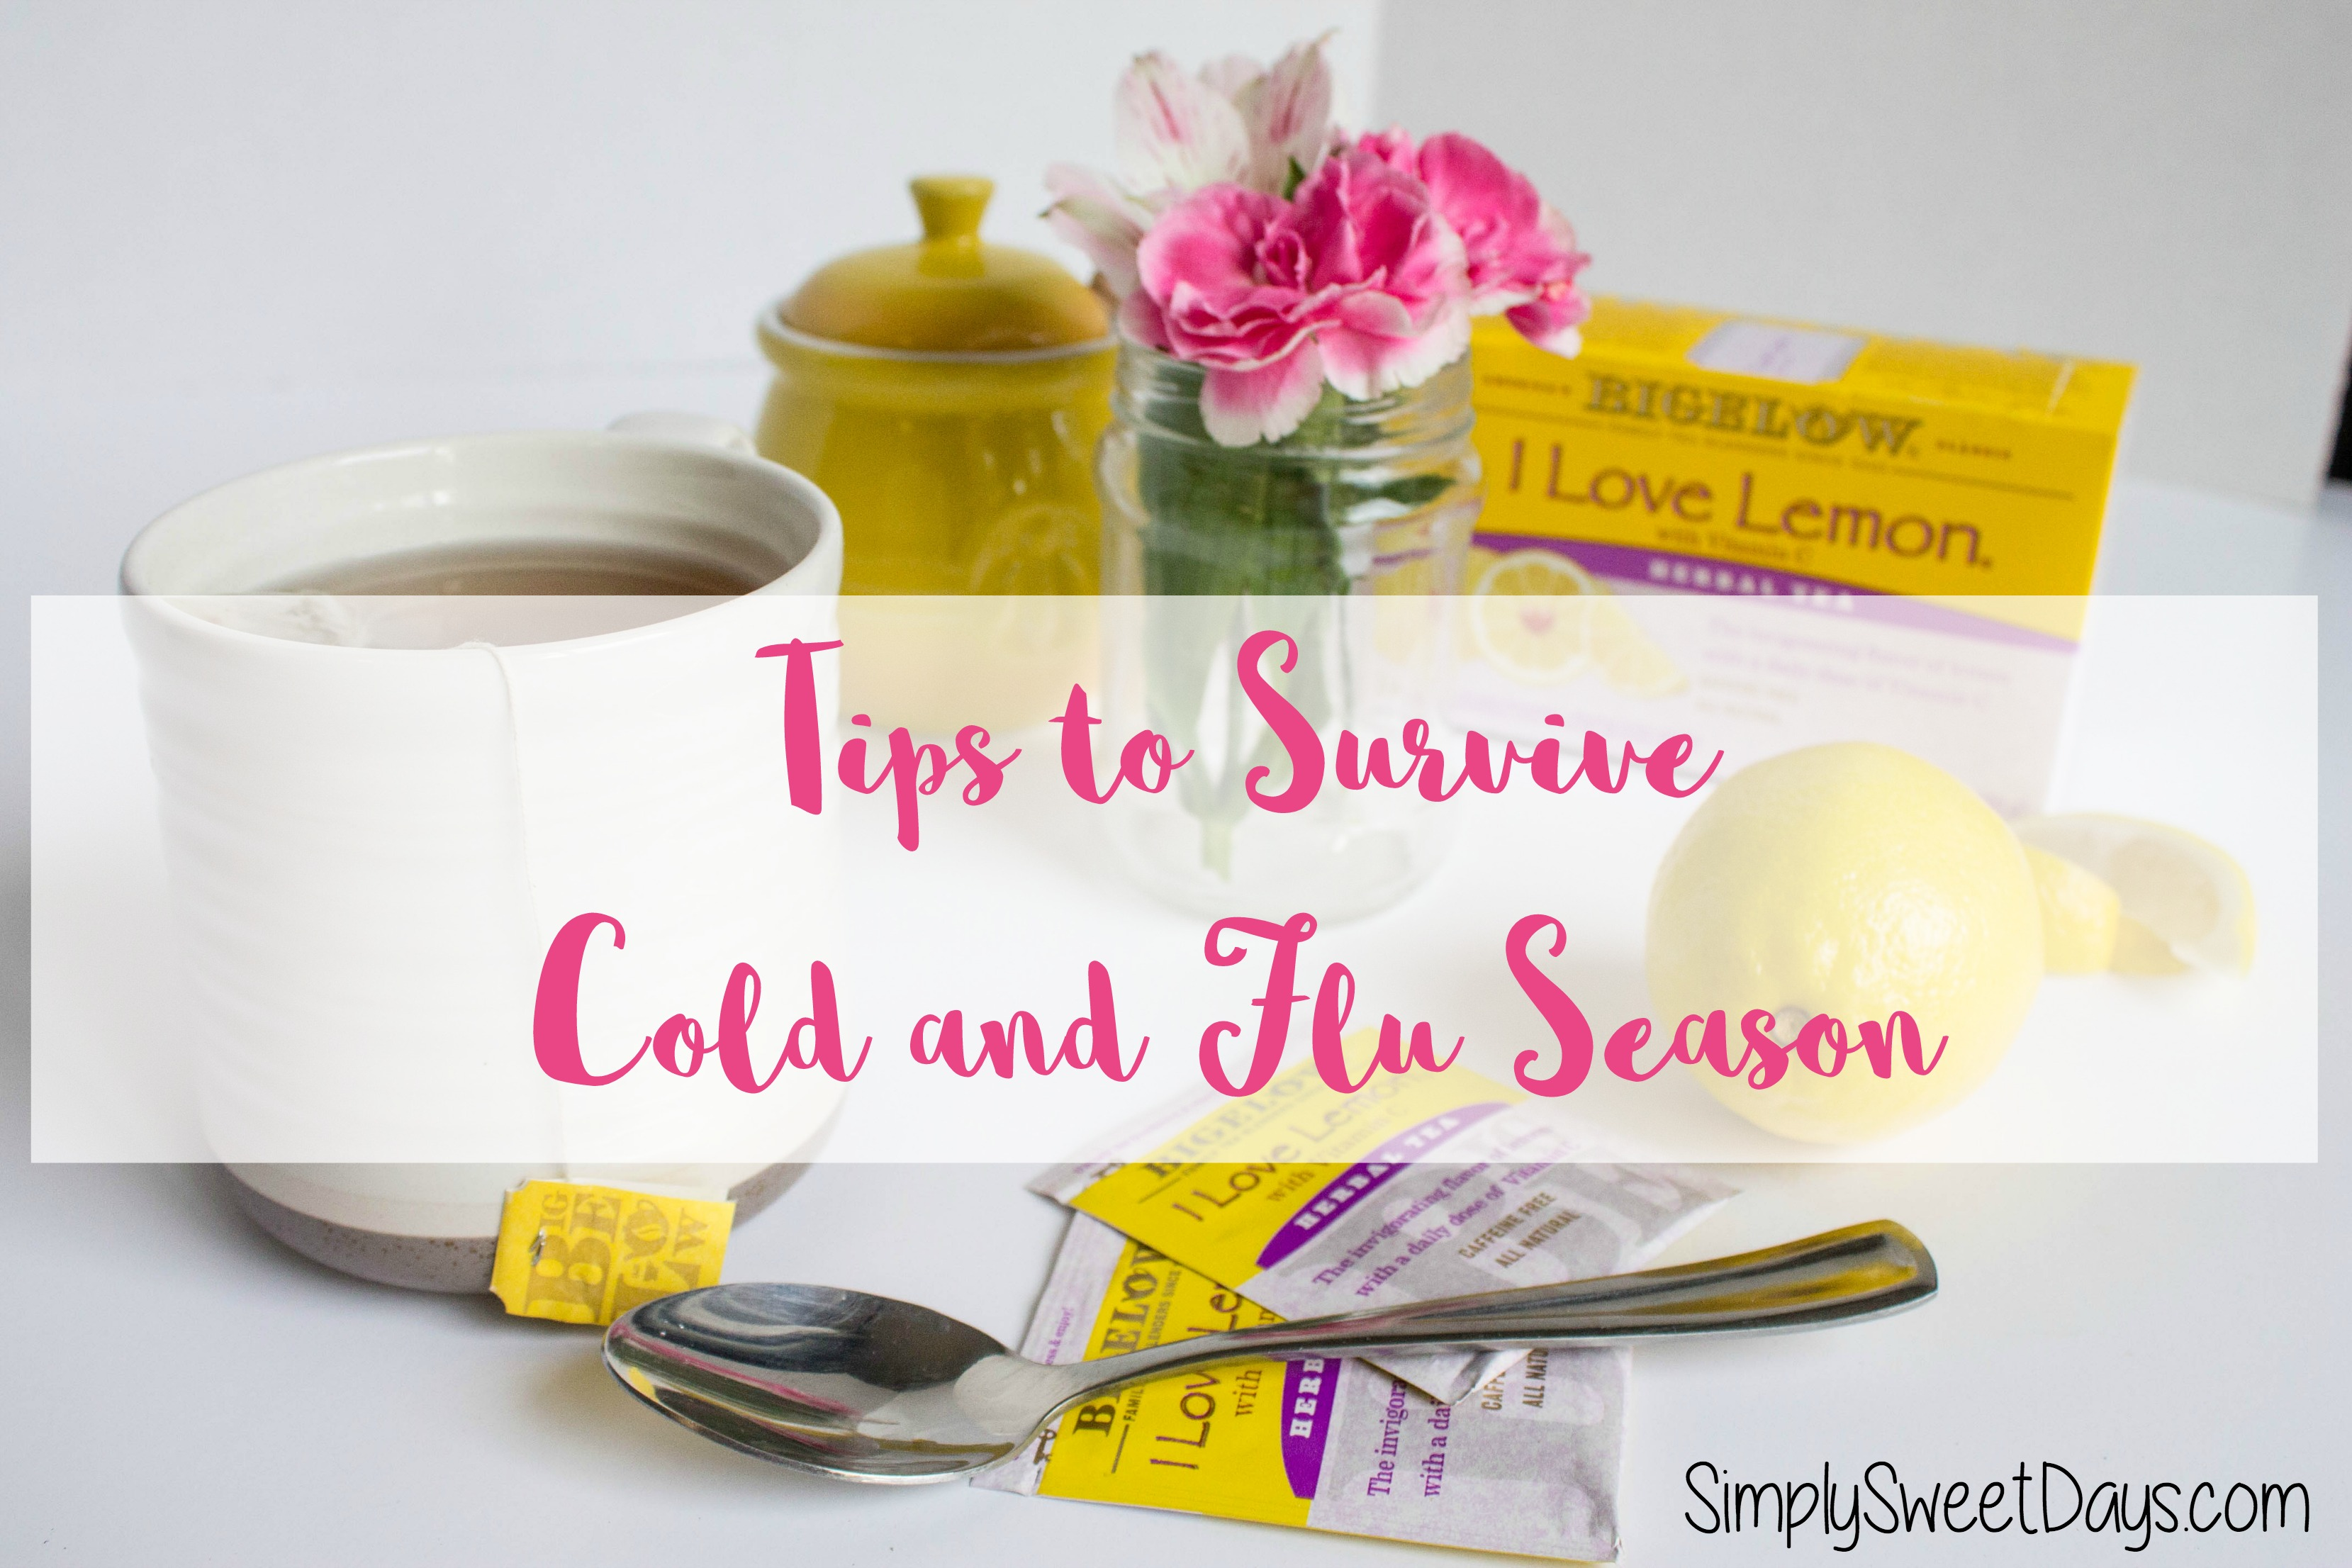 tips-to-survive-cold-and-flu-season